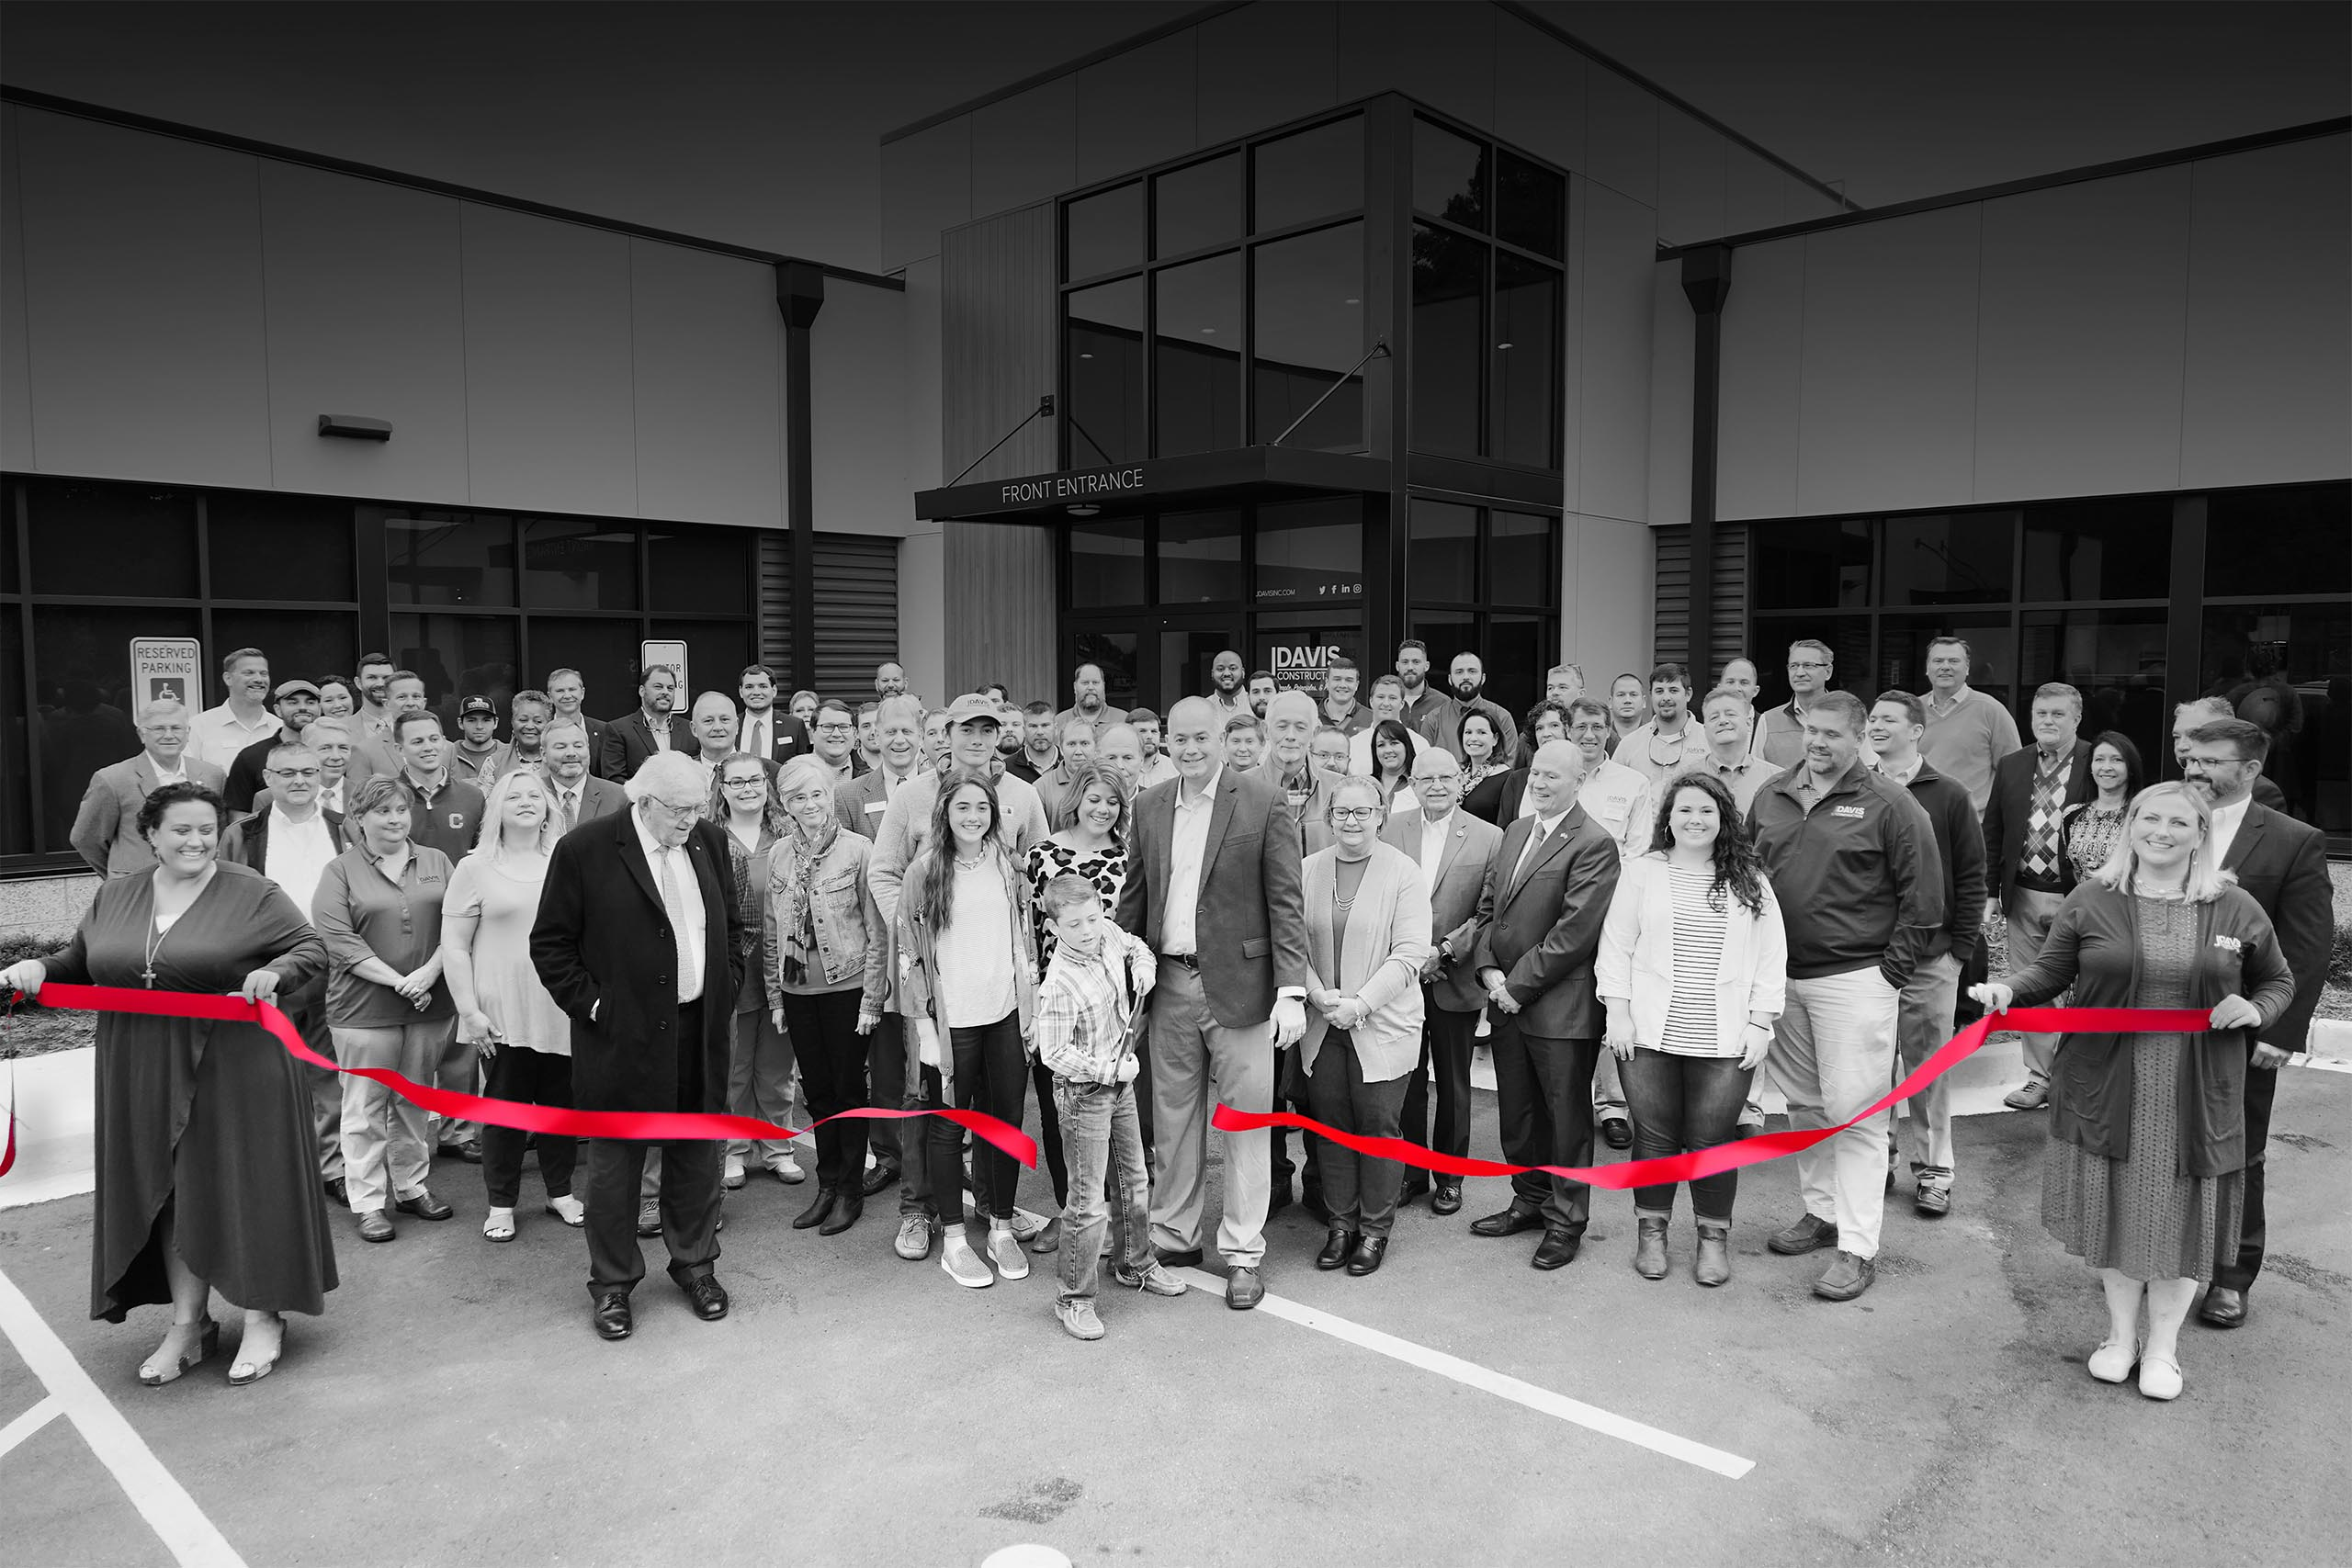 ribbon cutting at the JDavis Construction office